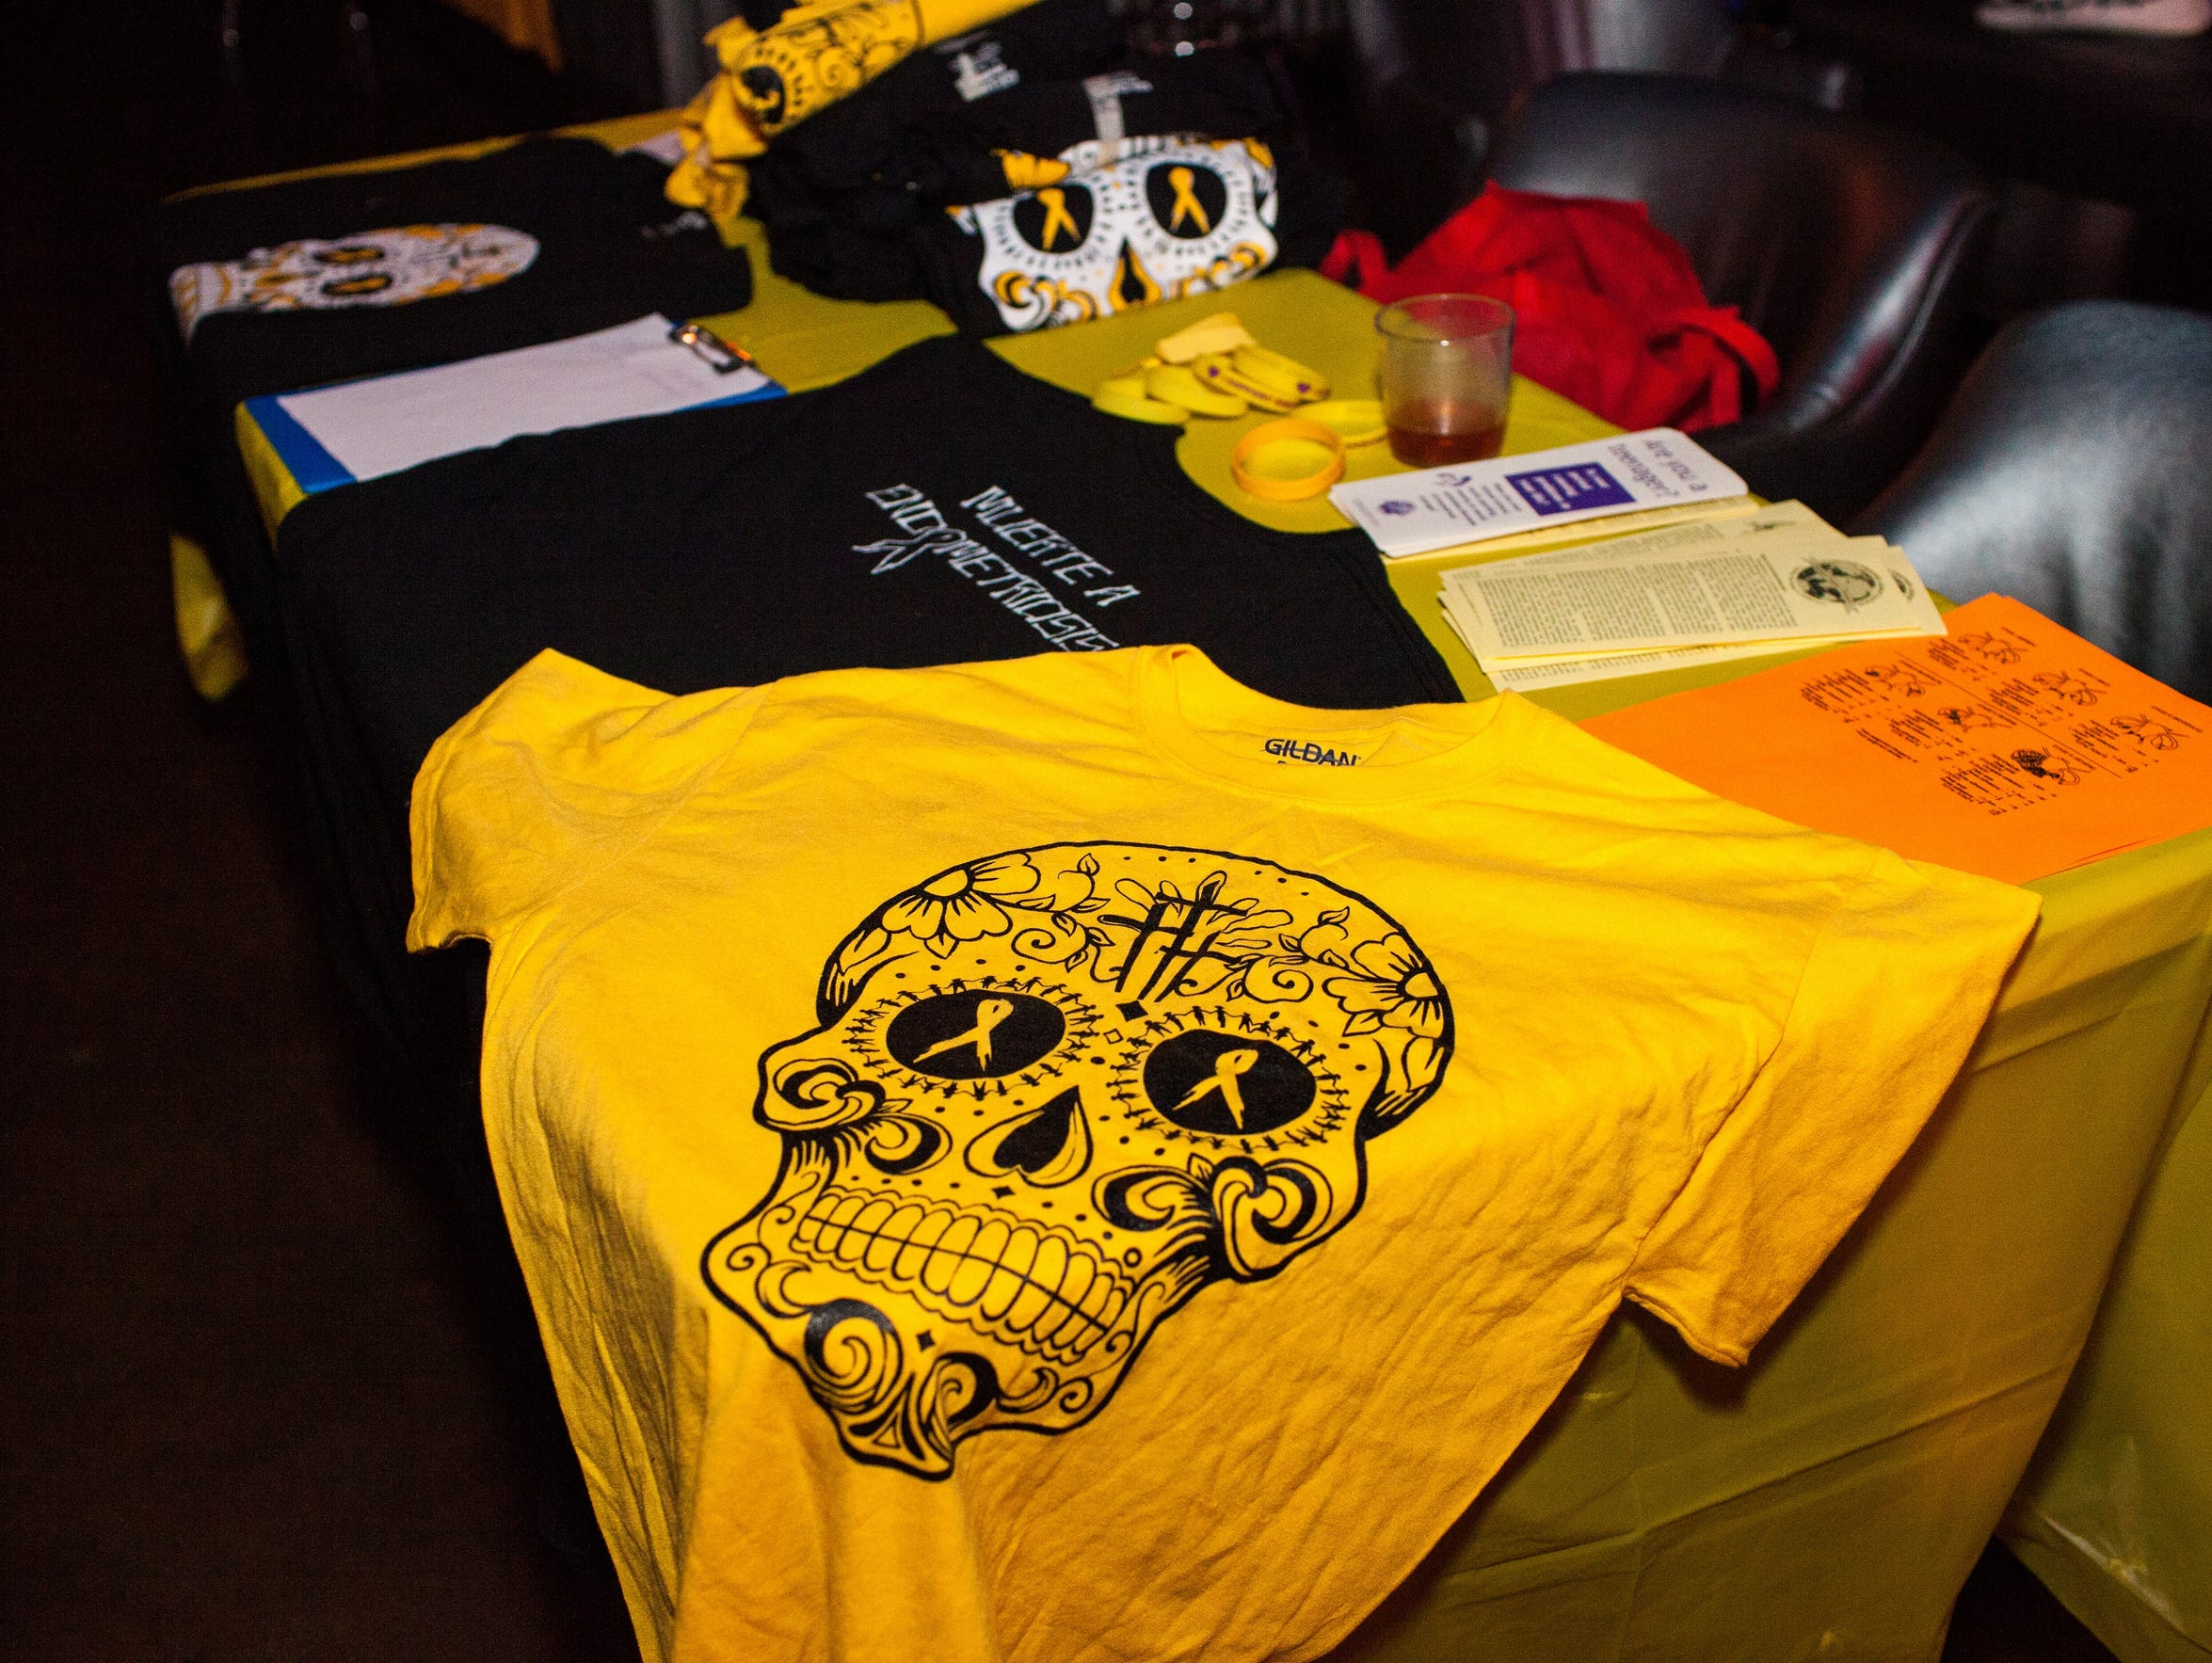 Shirts and merchandise on sale to raise funds for Team